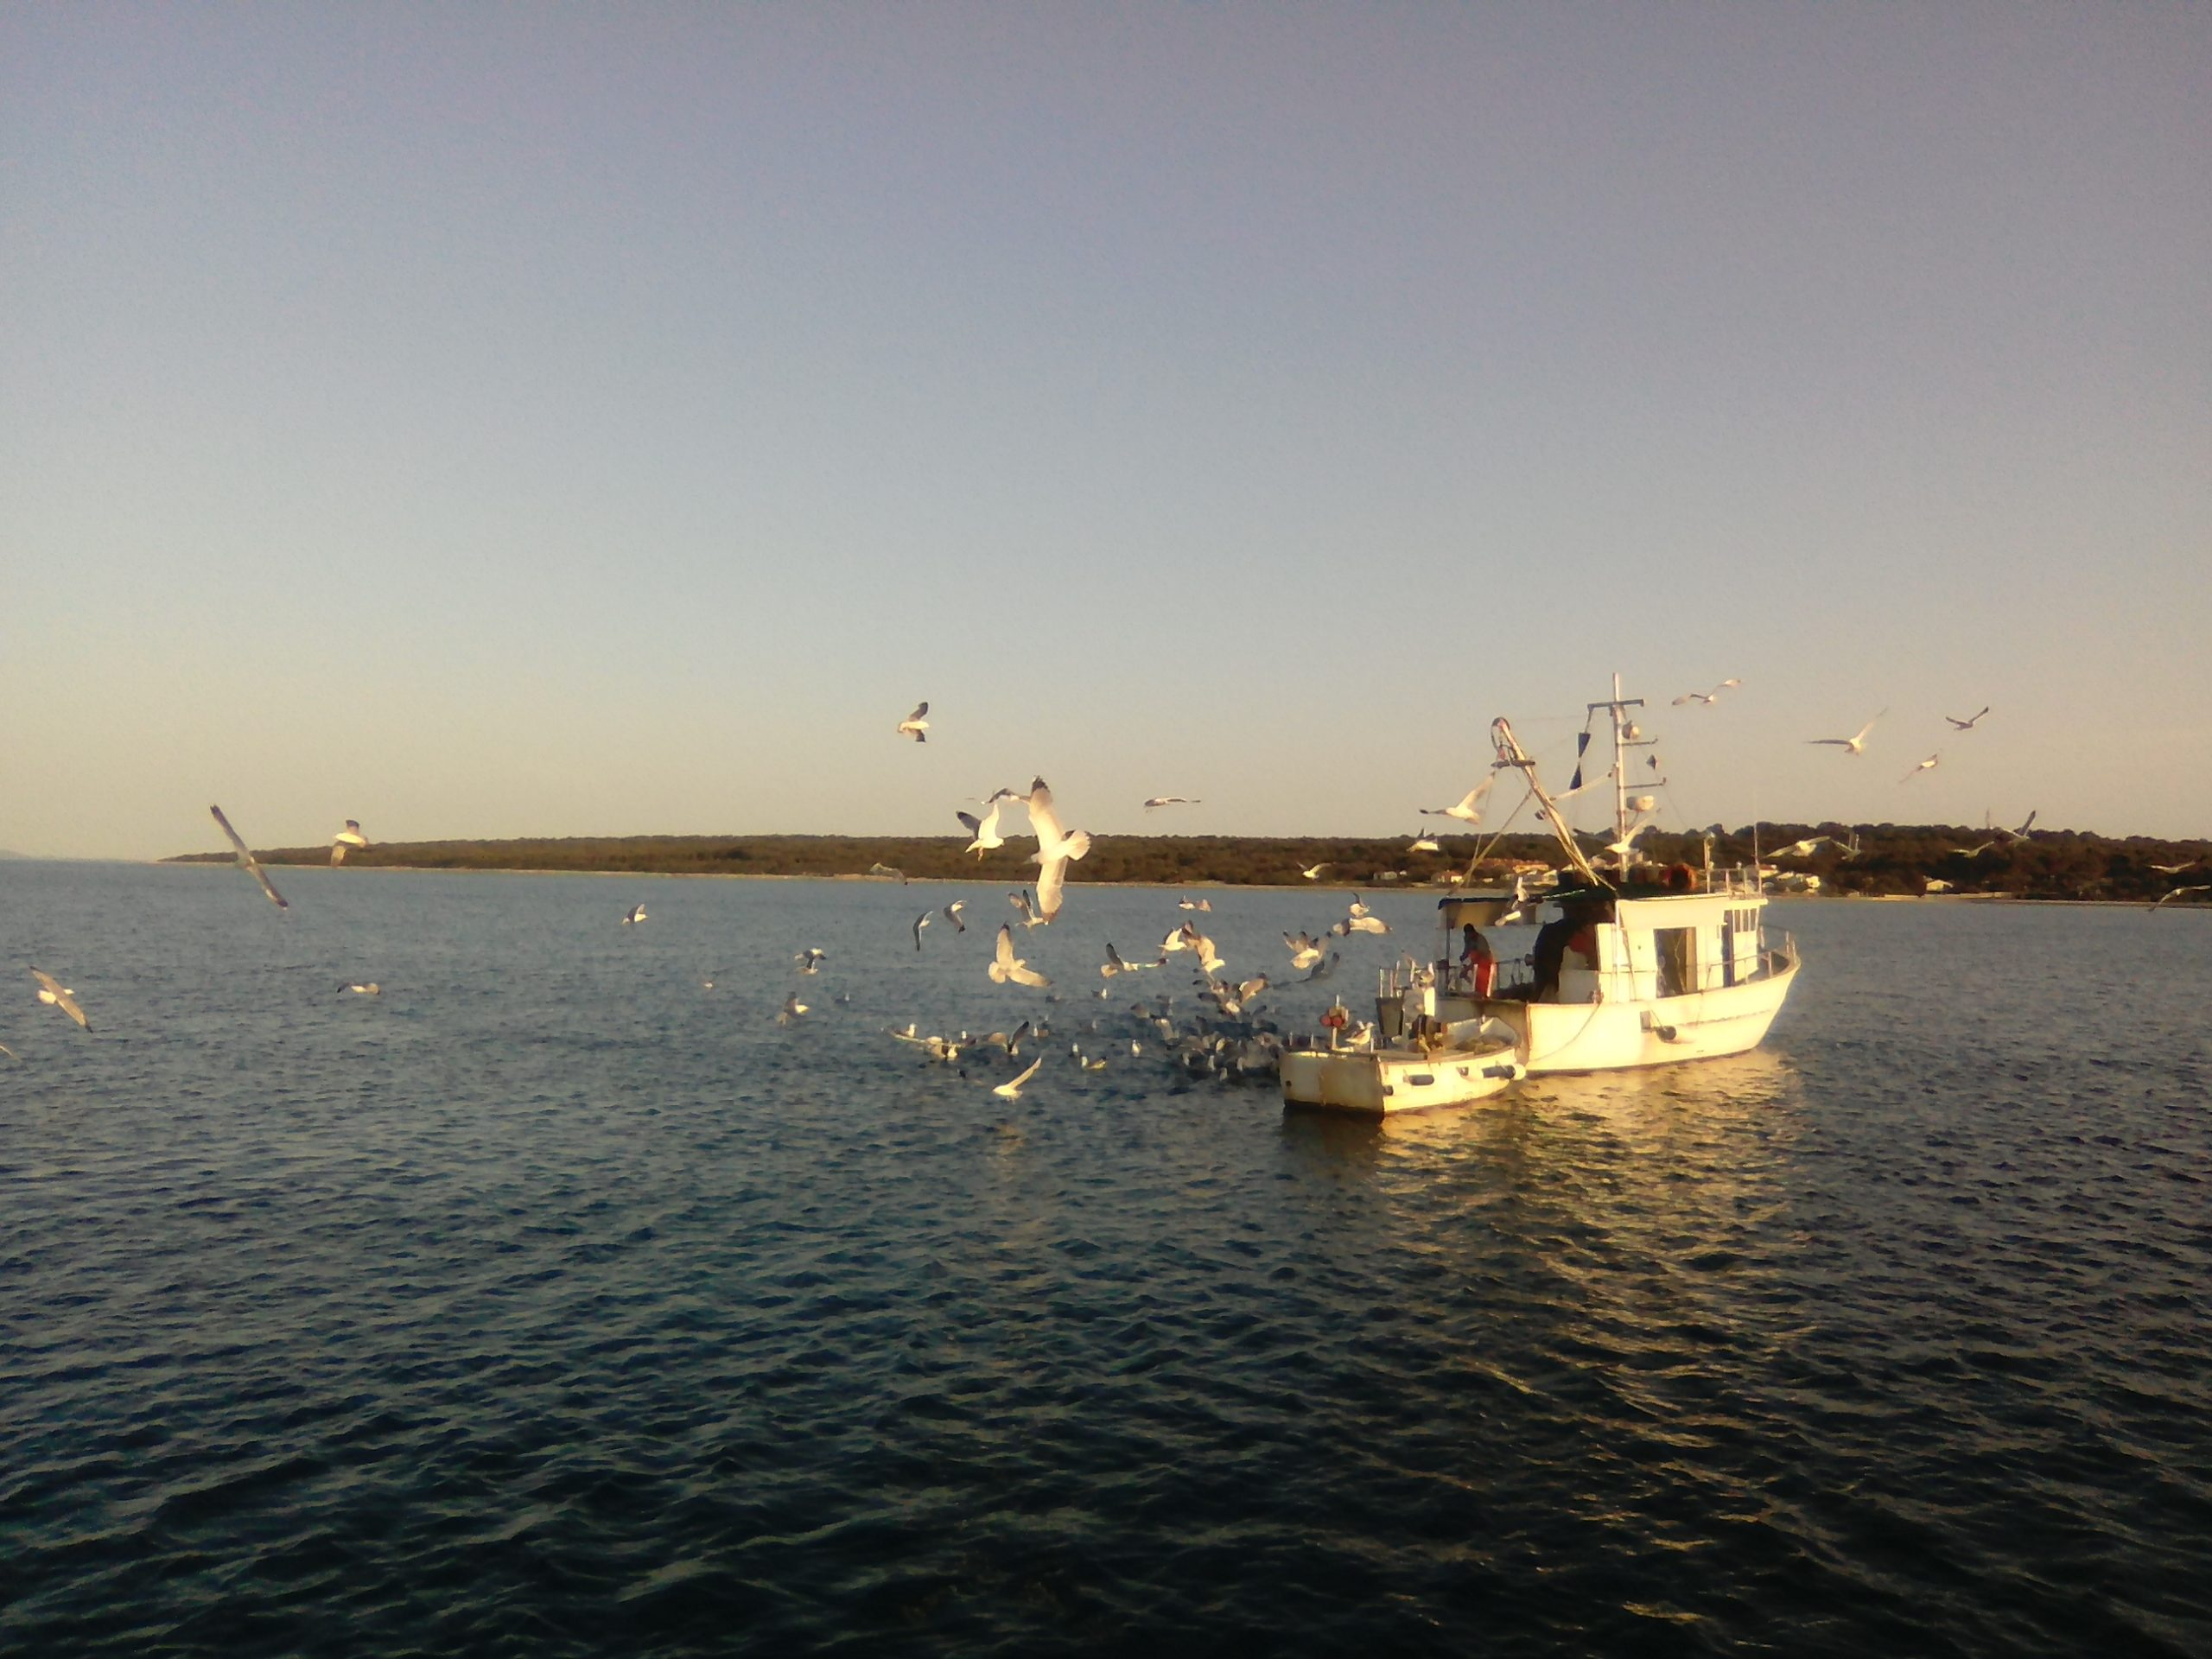 Seagulls clamouring for a fisherman's catch as he is returning to Silba's harbour of Mul in the evening.